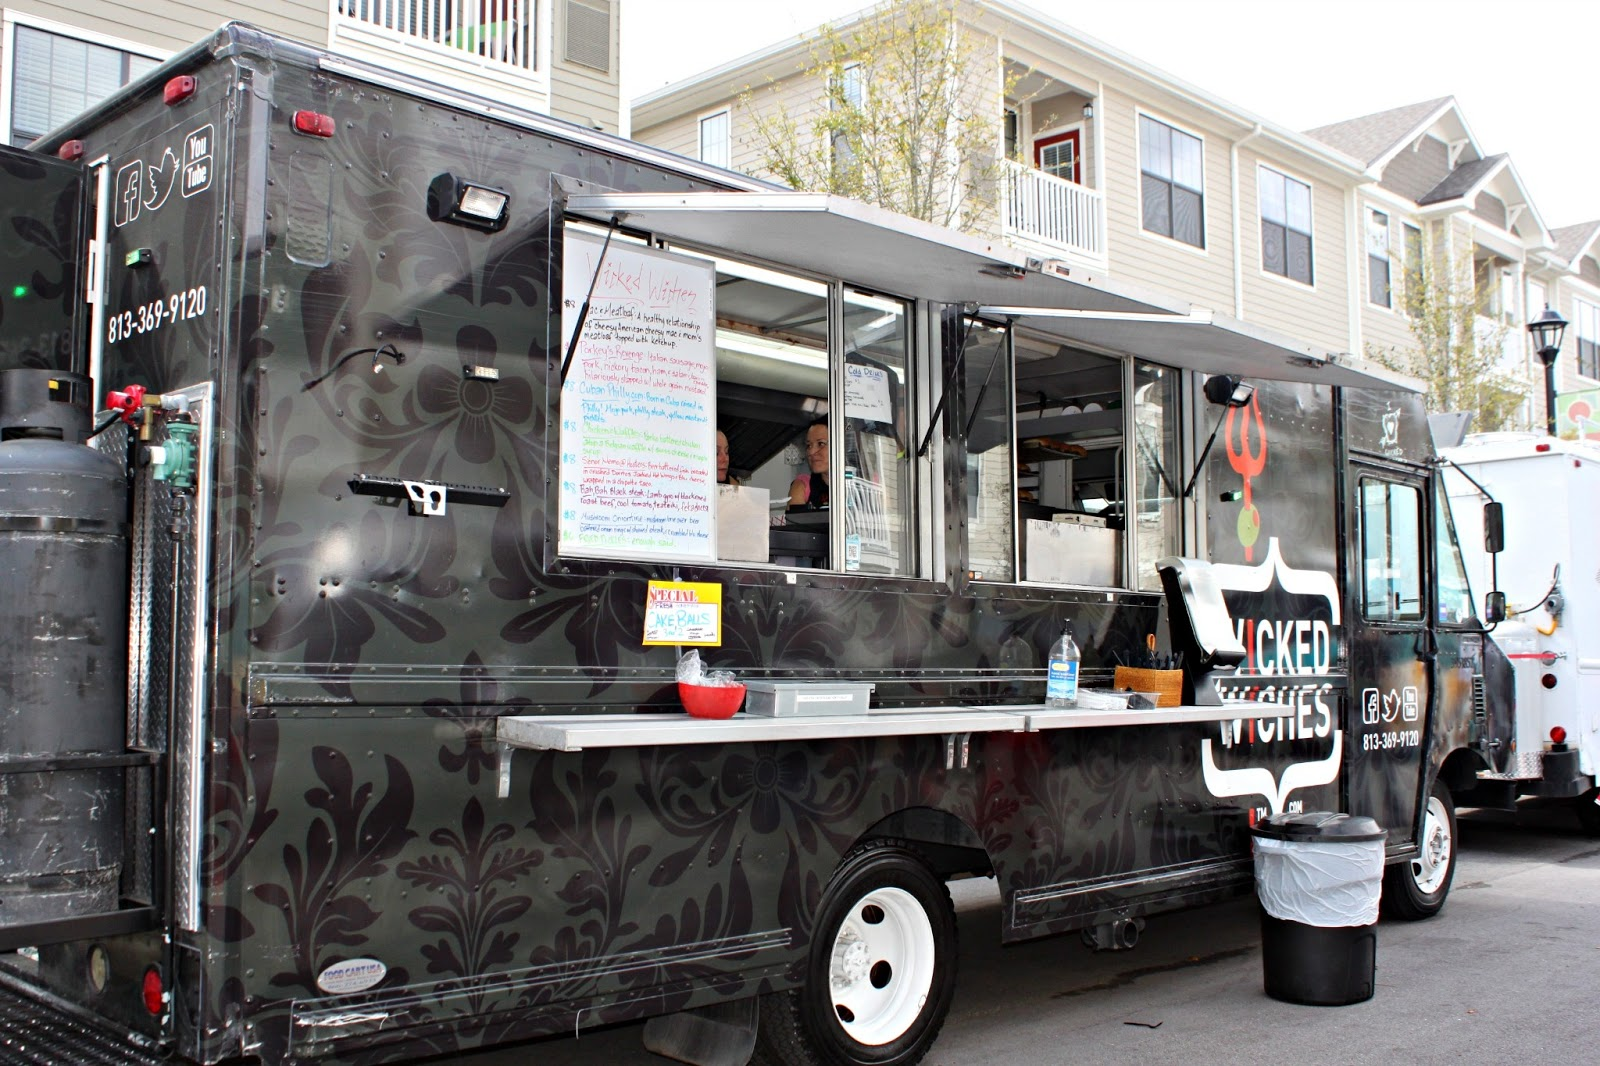 Food Truck Plans Of Food Truck Fun In Citrus Park The Foodie Patootie